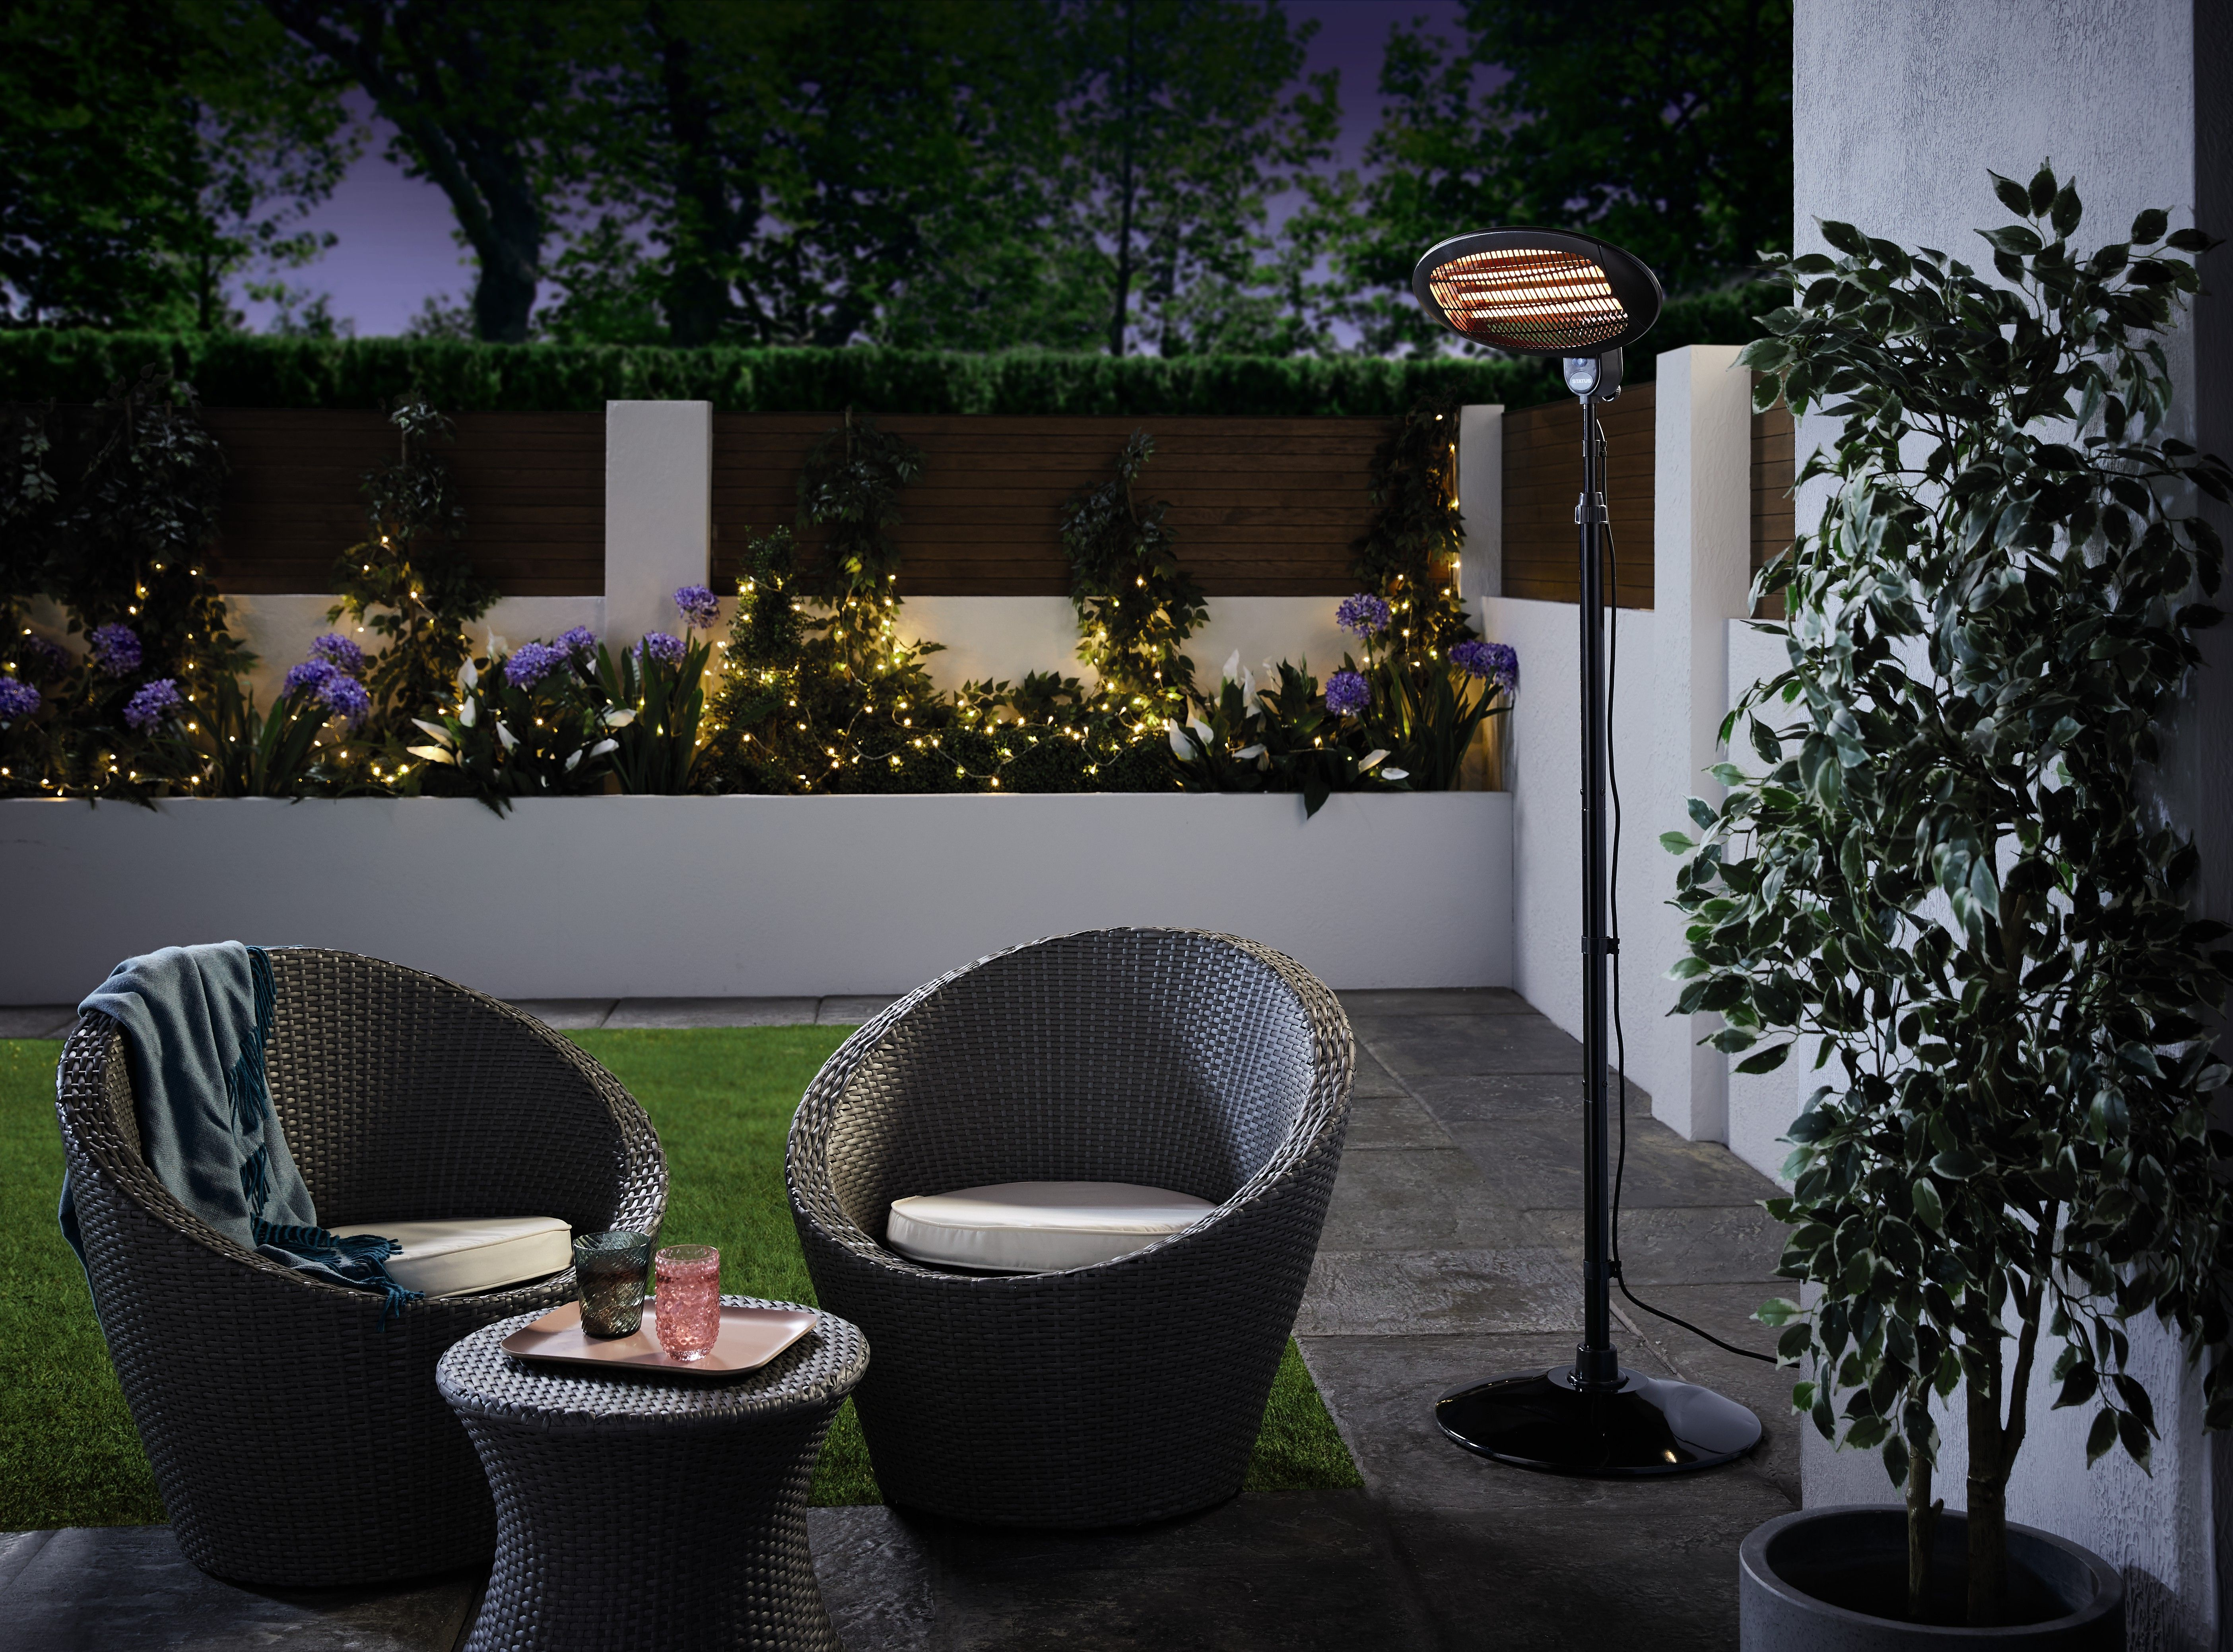 New aldi garden furniture is largest ever outdoor range aldi special offers